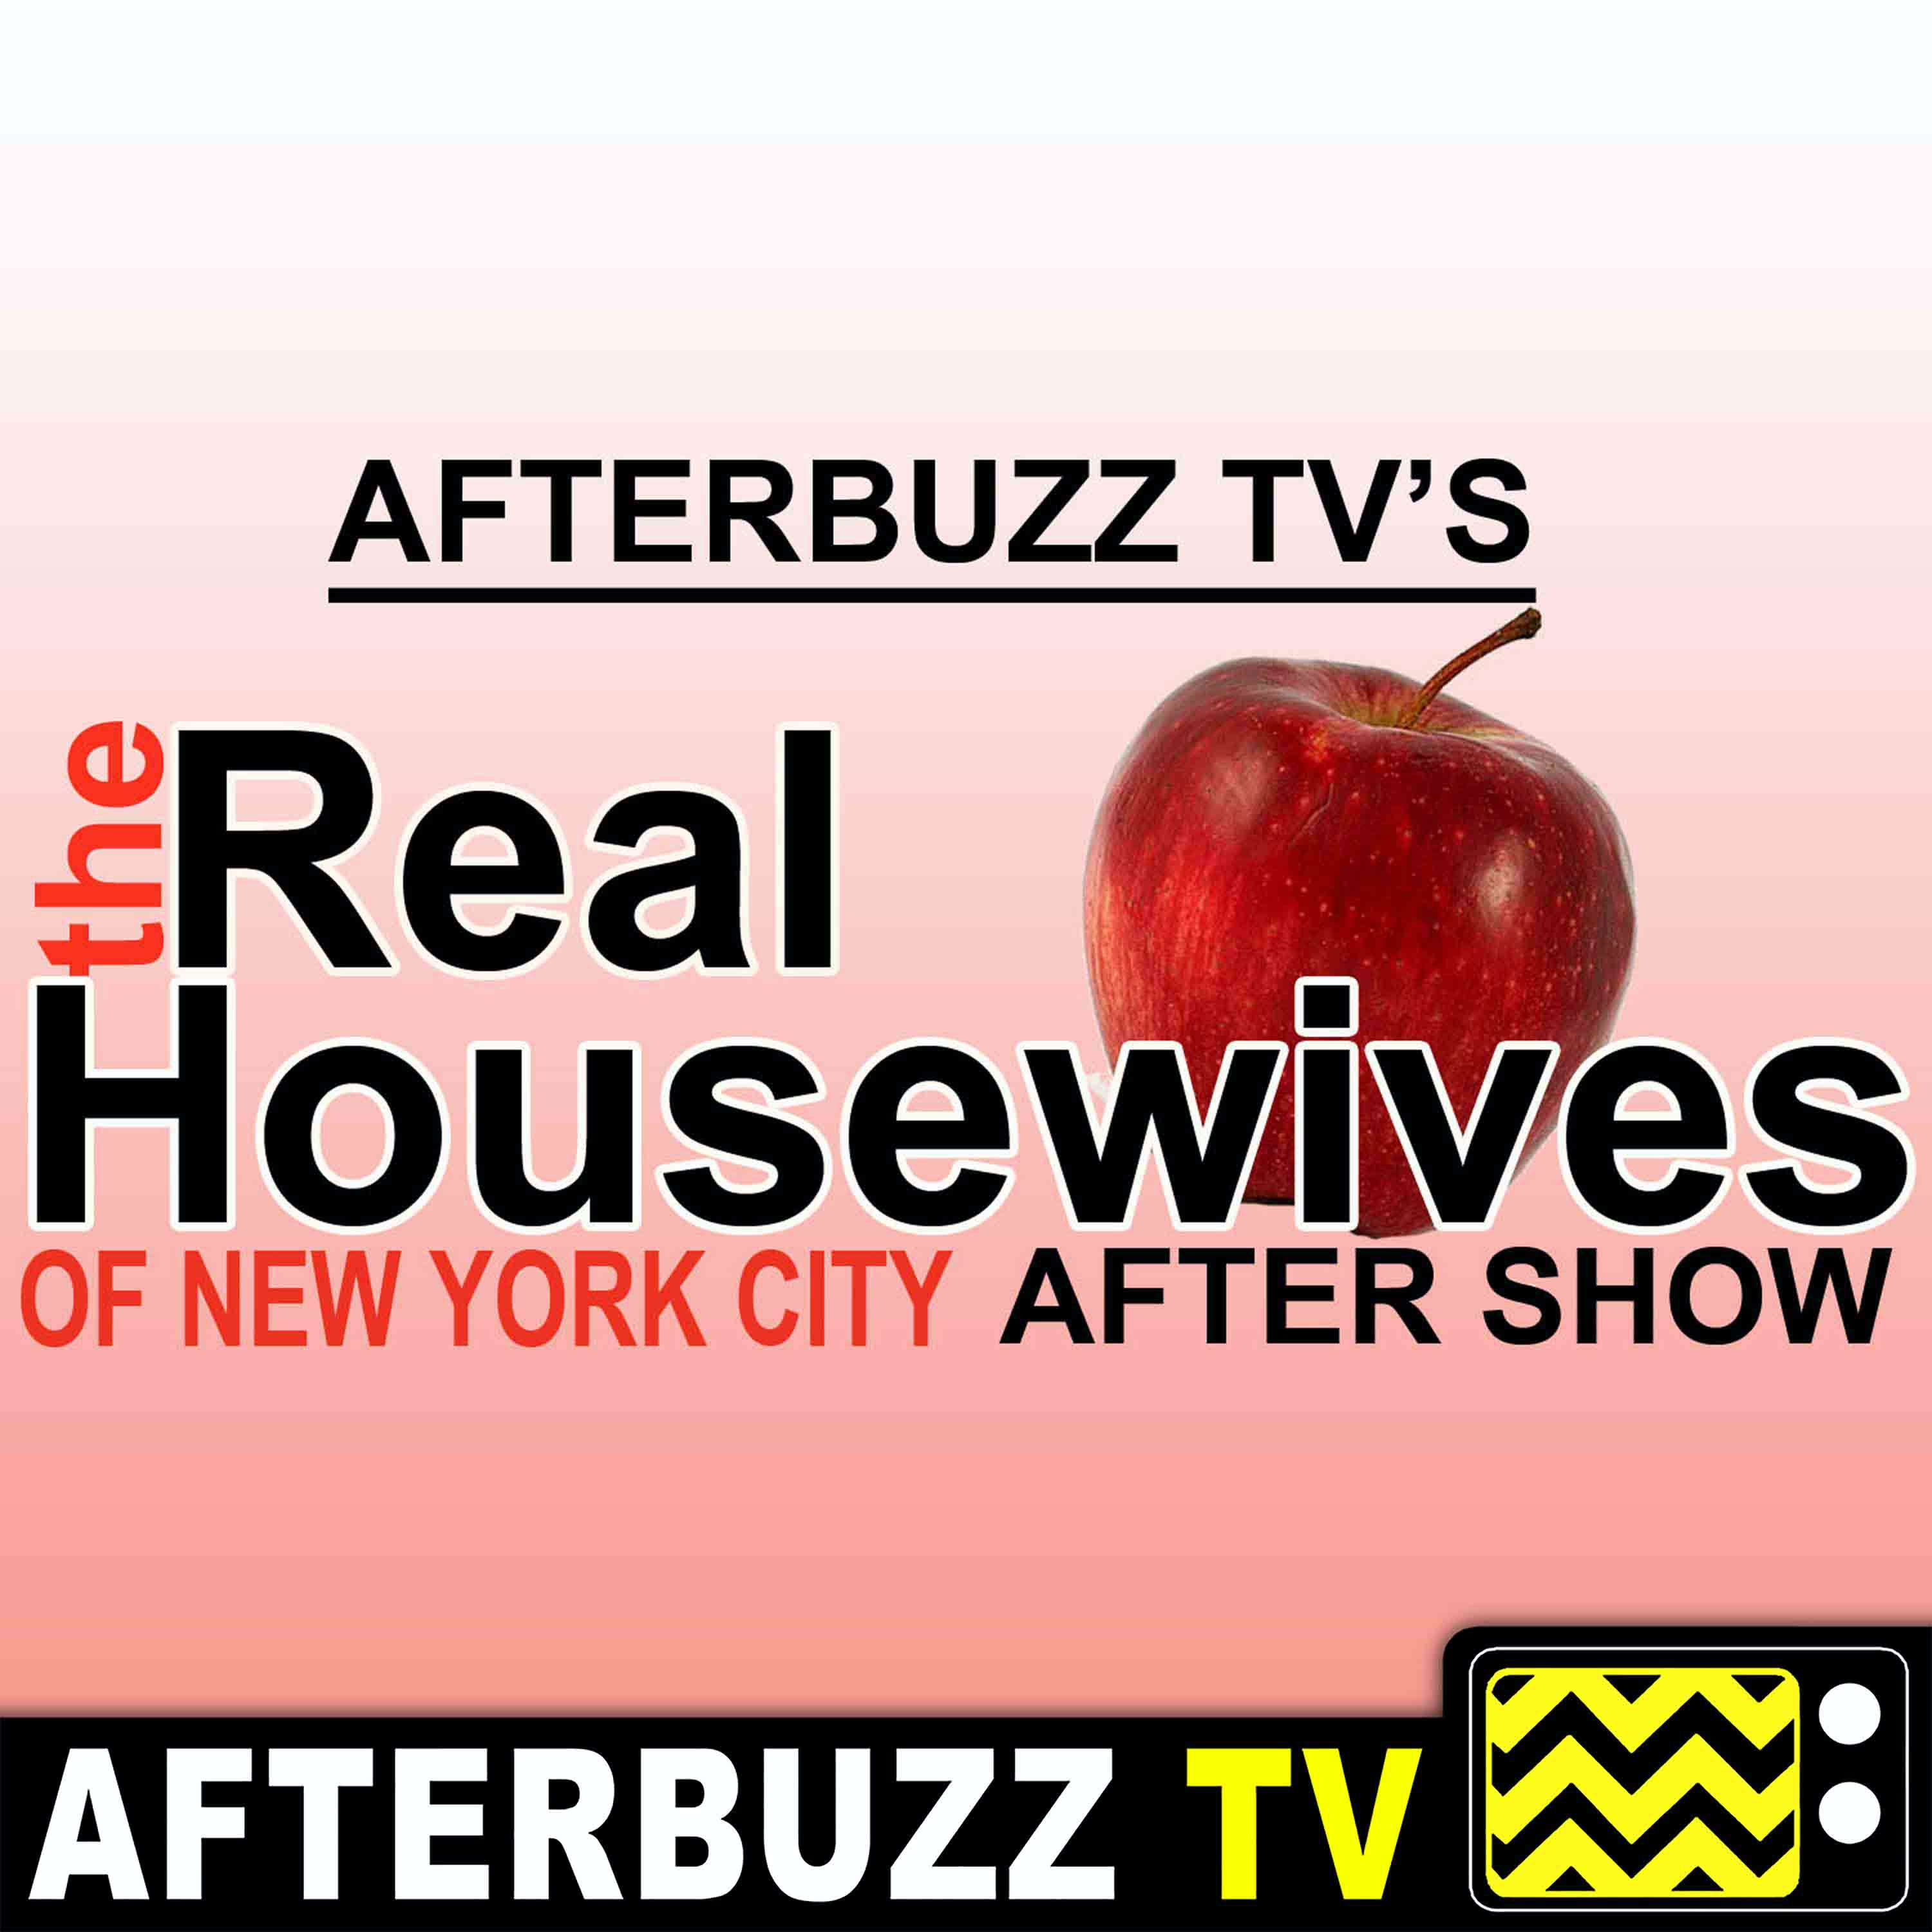 Yep, It's Good to Be Back! - S12 E1 'Real Housewives of NYC' Recap & Review